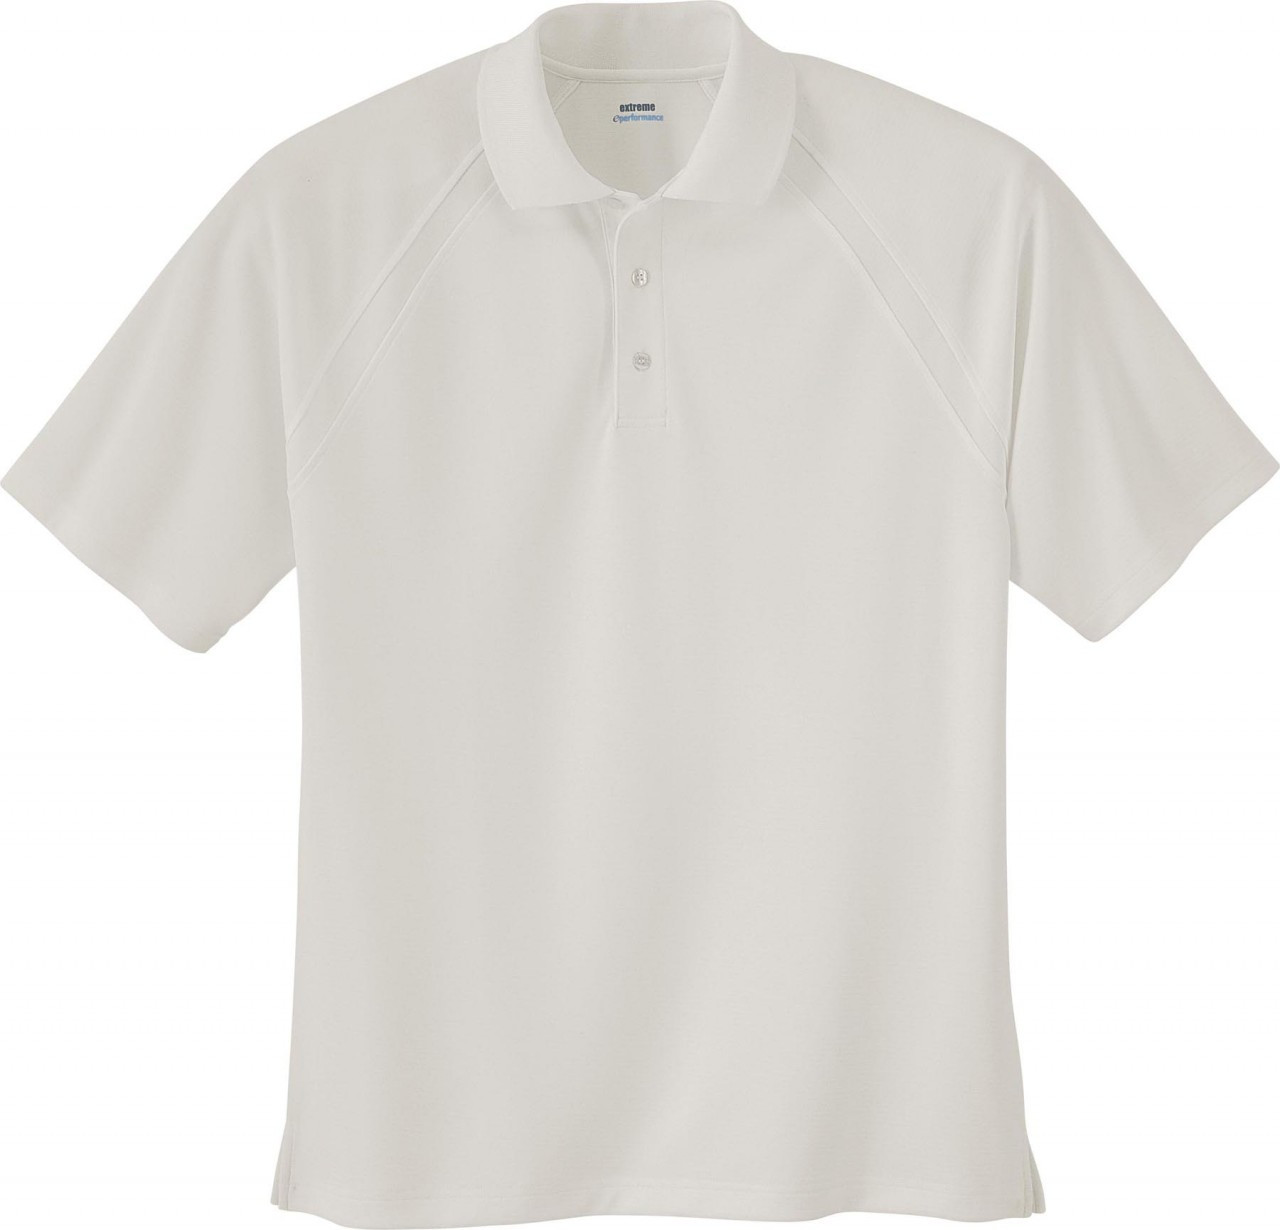 Frost - 85093 Extreme Men's Eperformance™ Ottoman Textured Polo Shirt | BlankClothing.ca